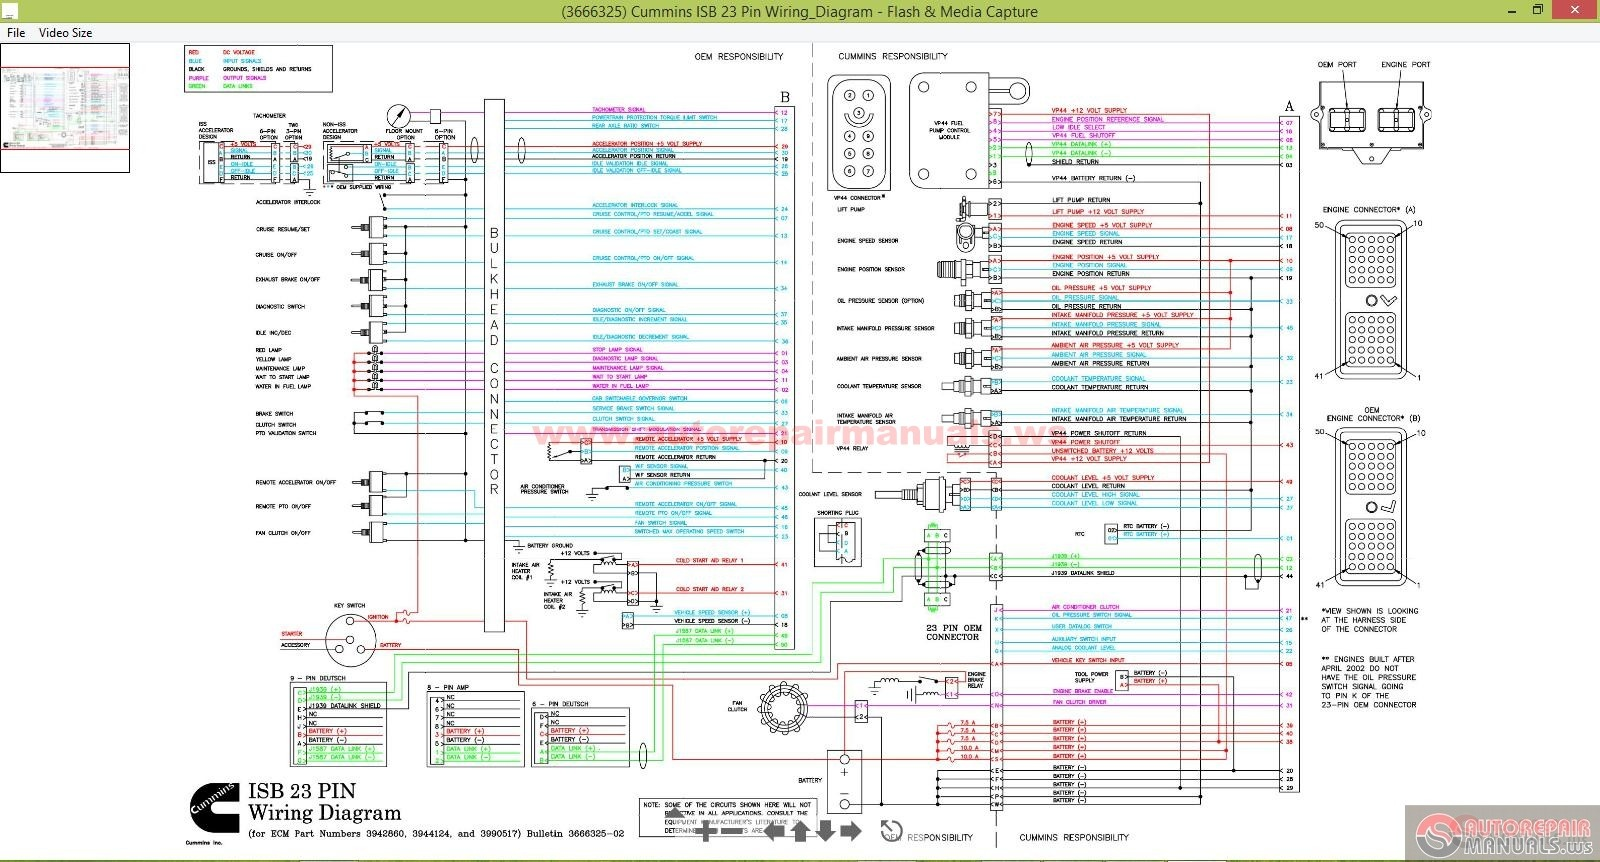 3666325_Cummins_ISB_23_Pin_WiringDiagram cat 70 pin ecm wiring diagram caterpillar c15 wiring diagram  at n-0.co